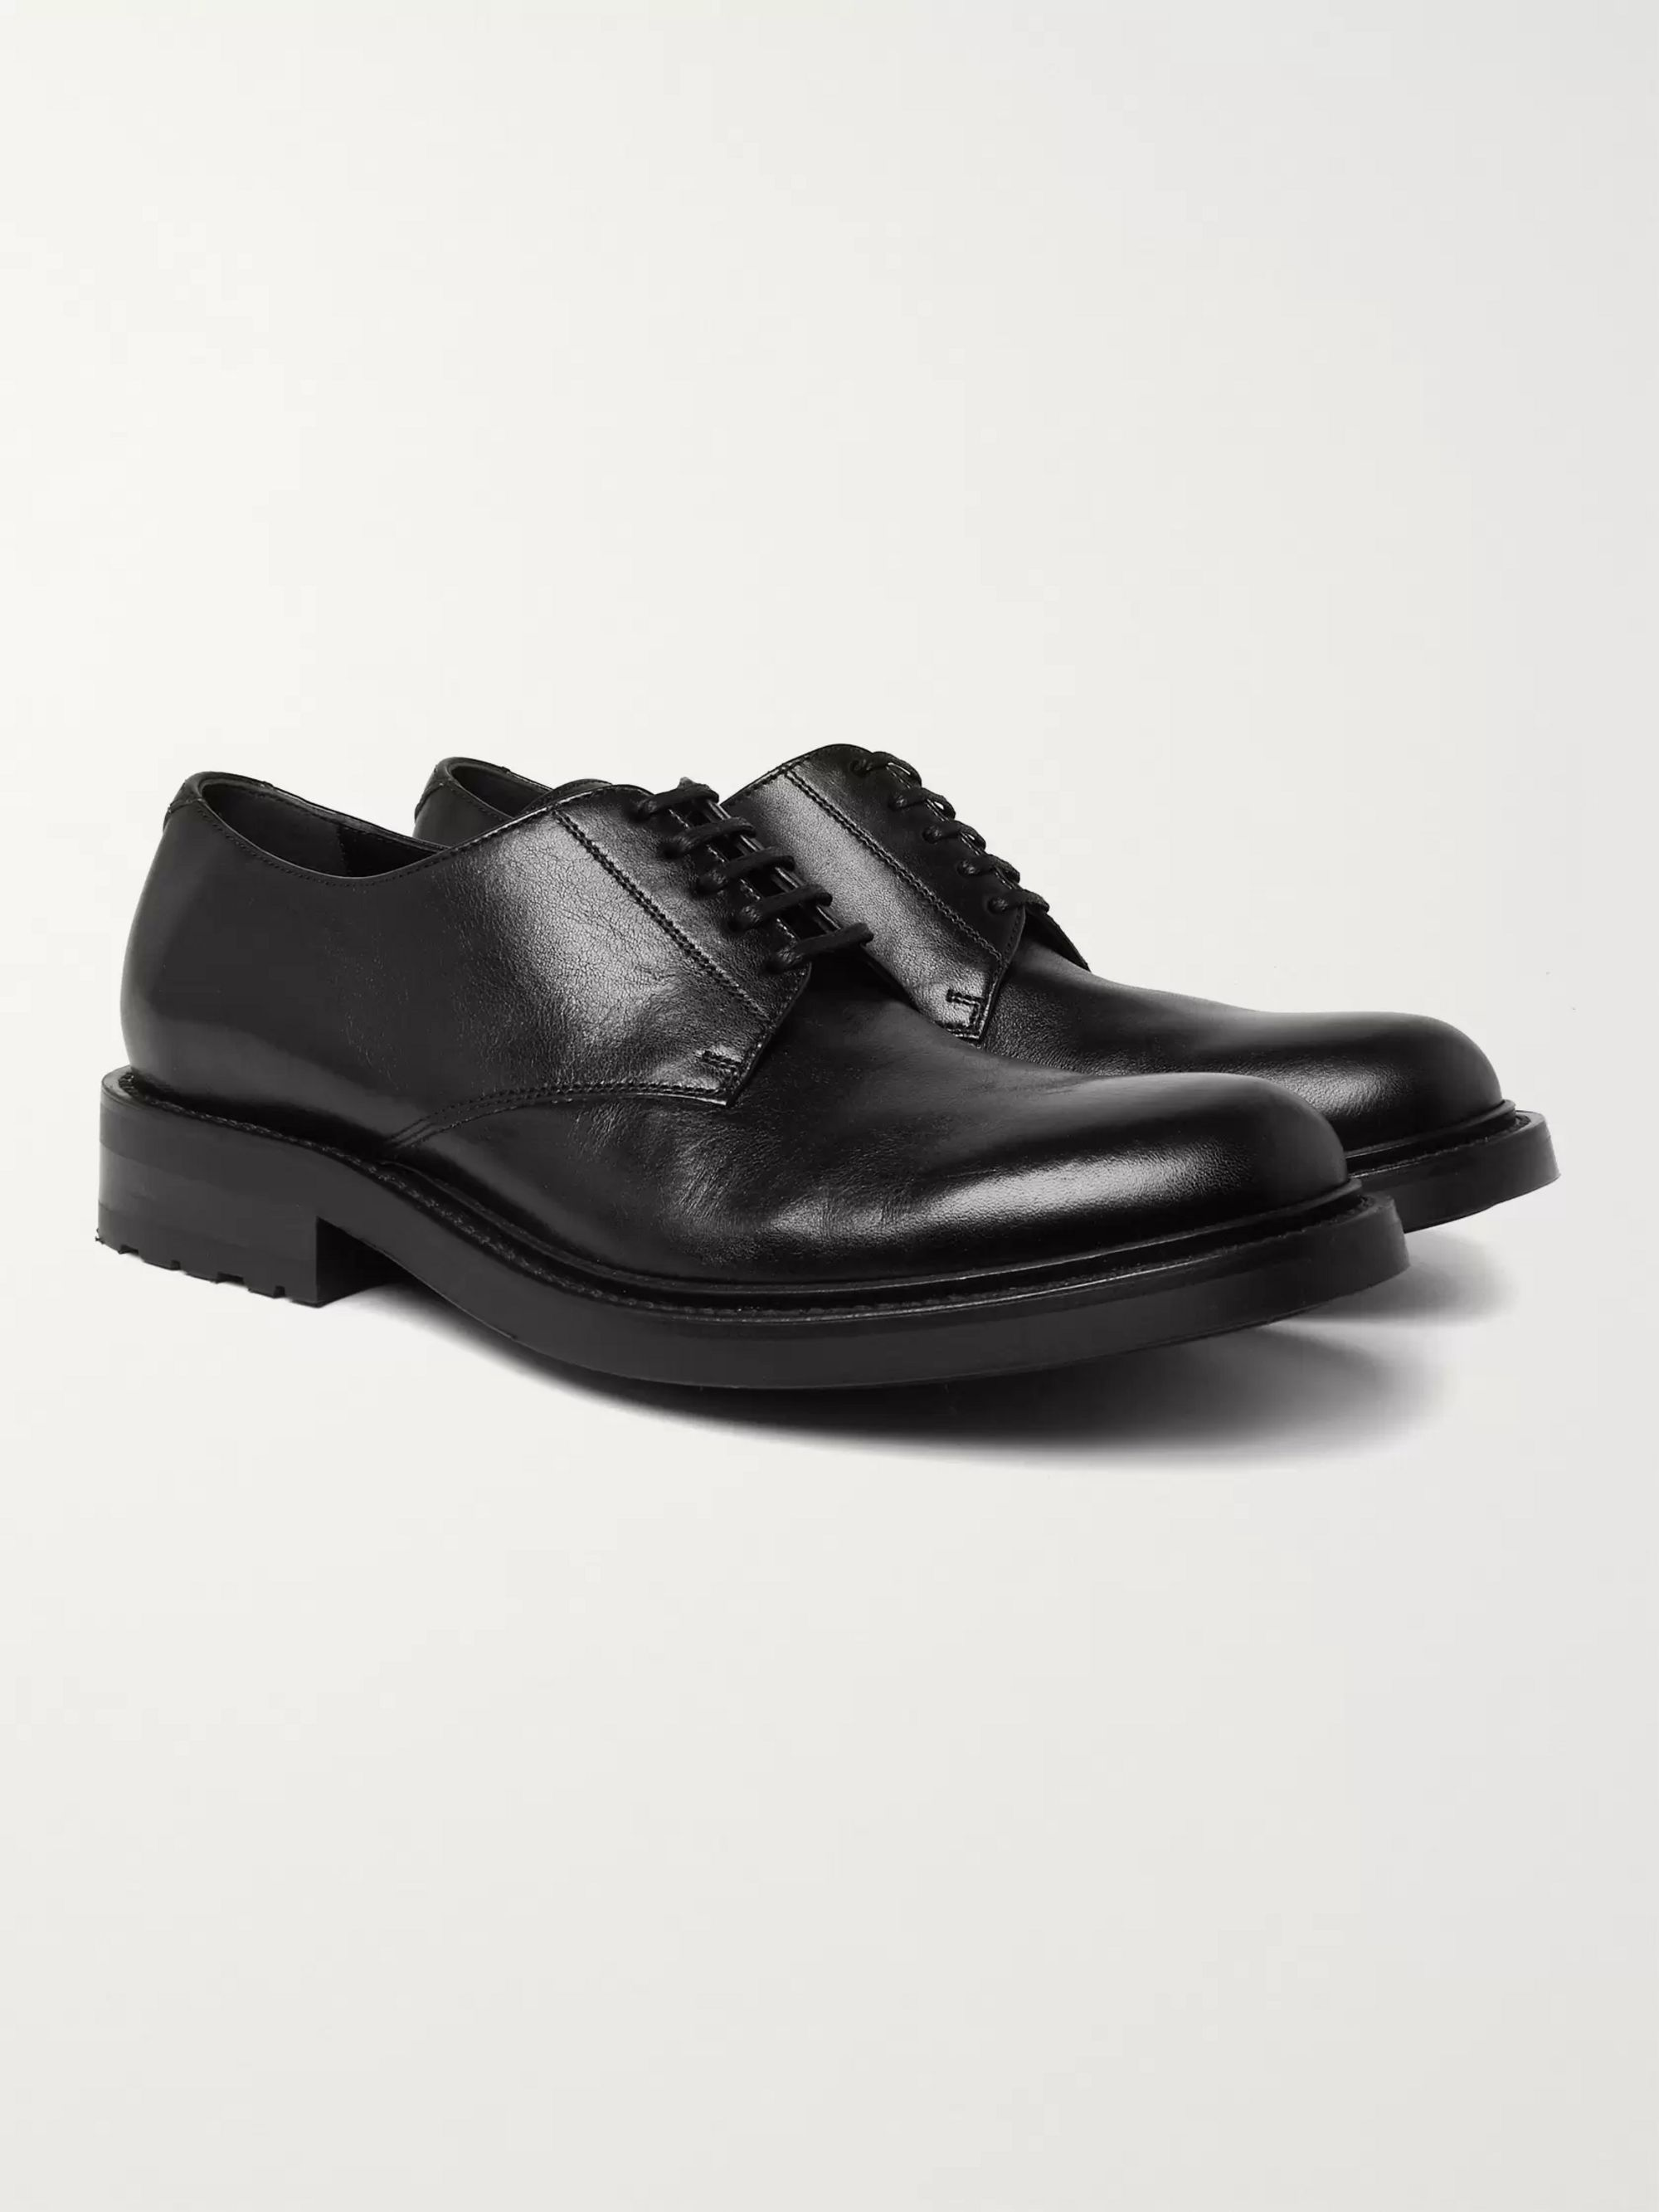 SAINT LAURENT Army Leather Derby Shoes